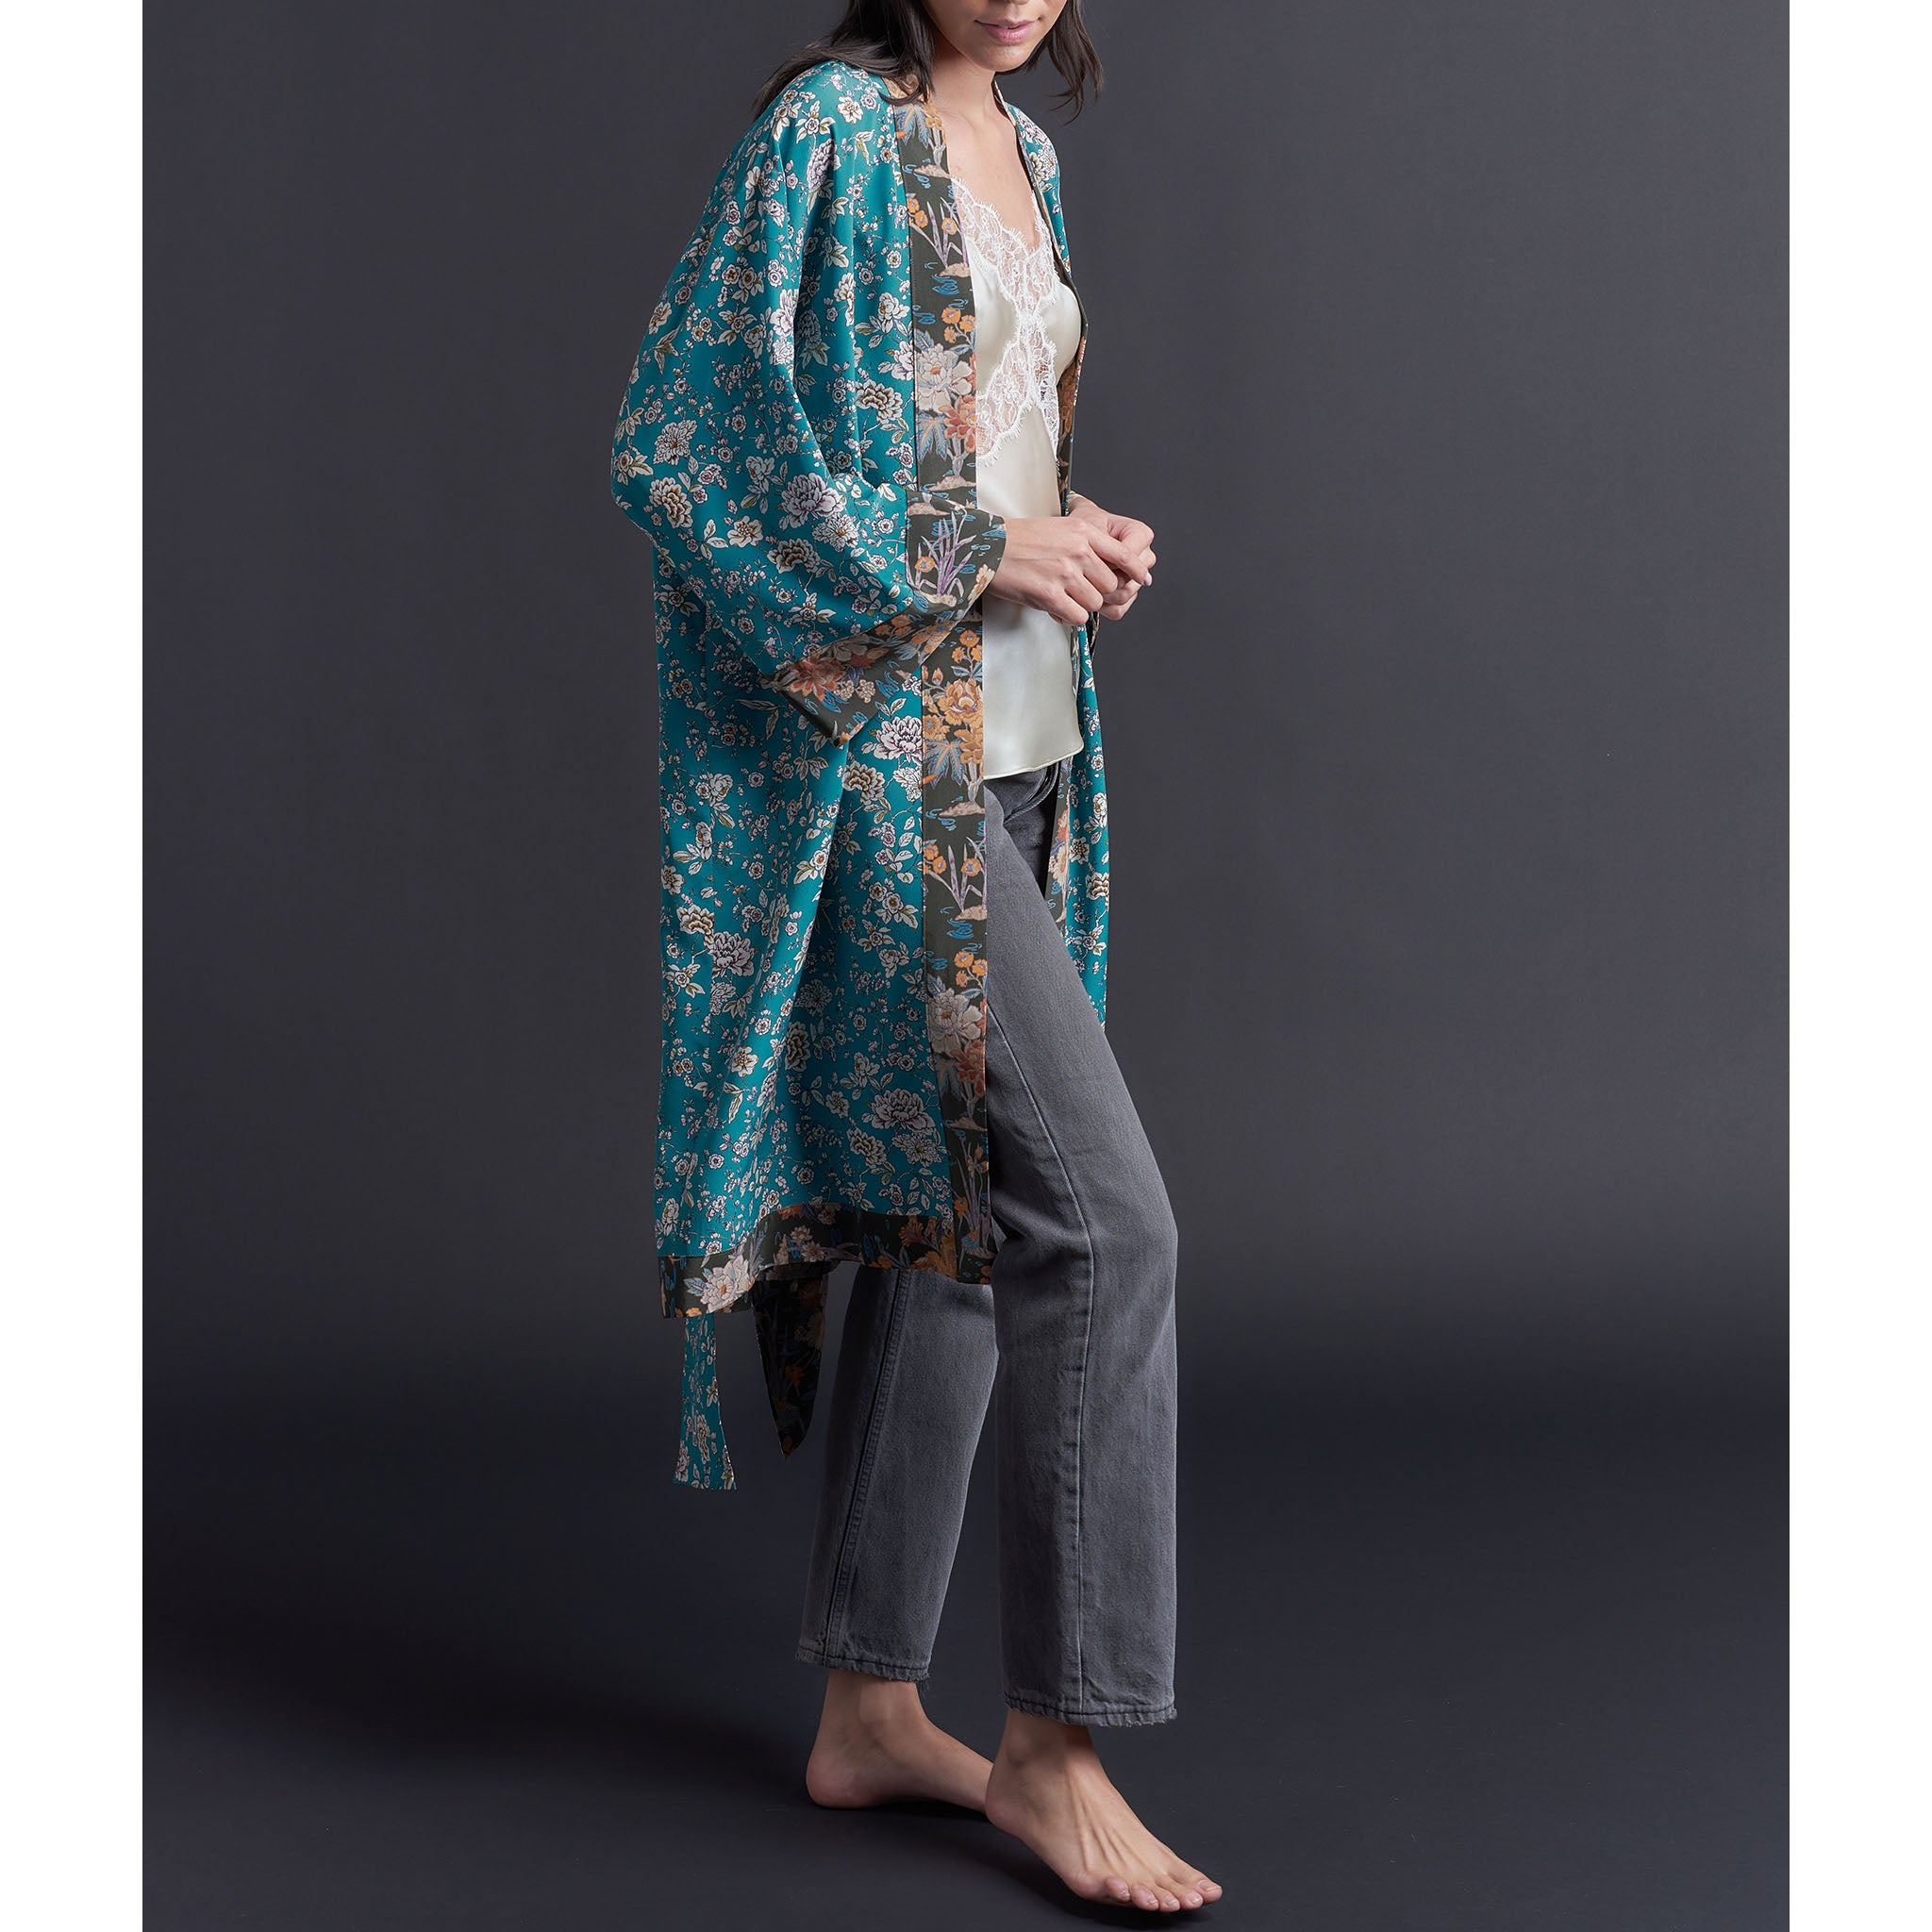 Selene Dressing Gown in Aqua Ceremony Liberty Silk Crepe De Chine